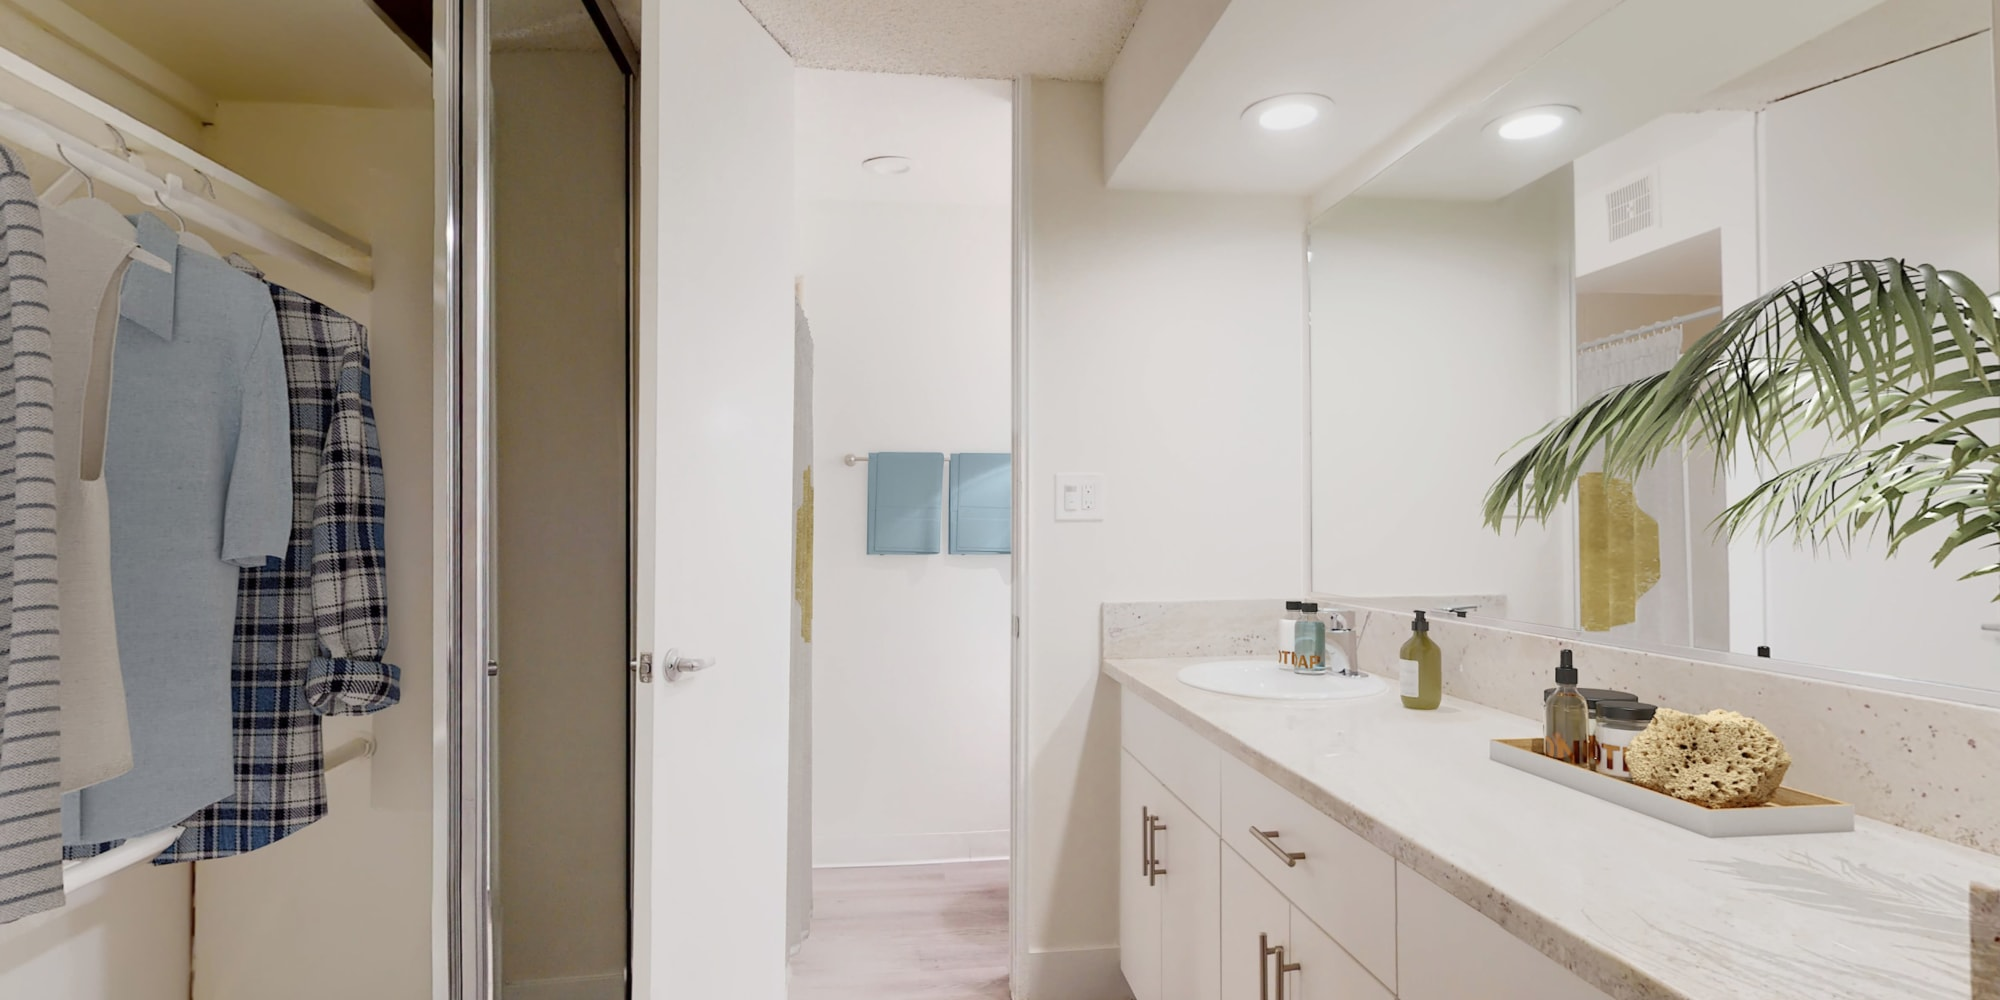 Studio apartment's bathroom with a large vanity mirror and mirrored closet at Mediterranean Village in West Hollywood, California